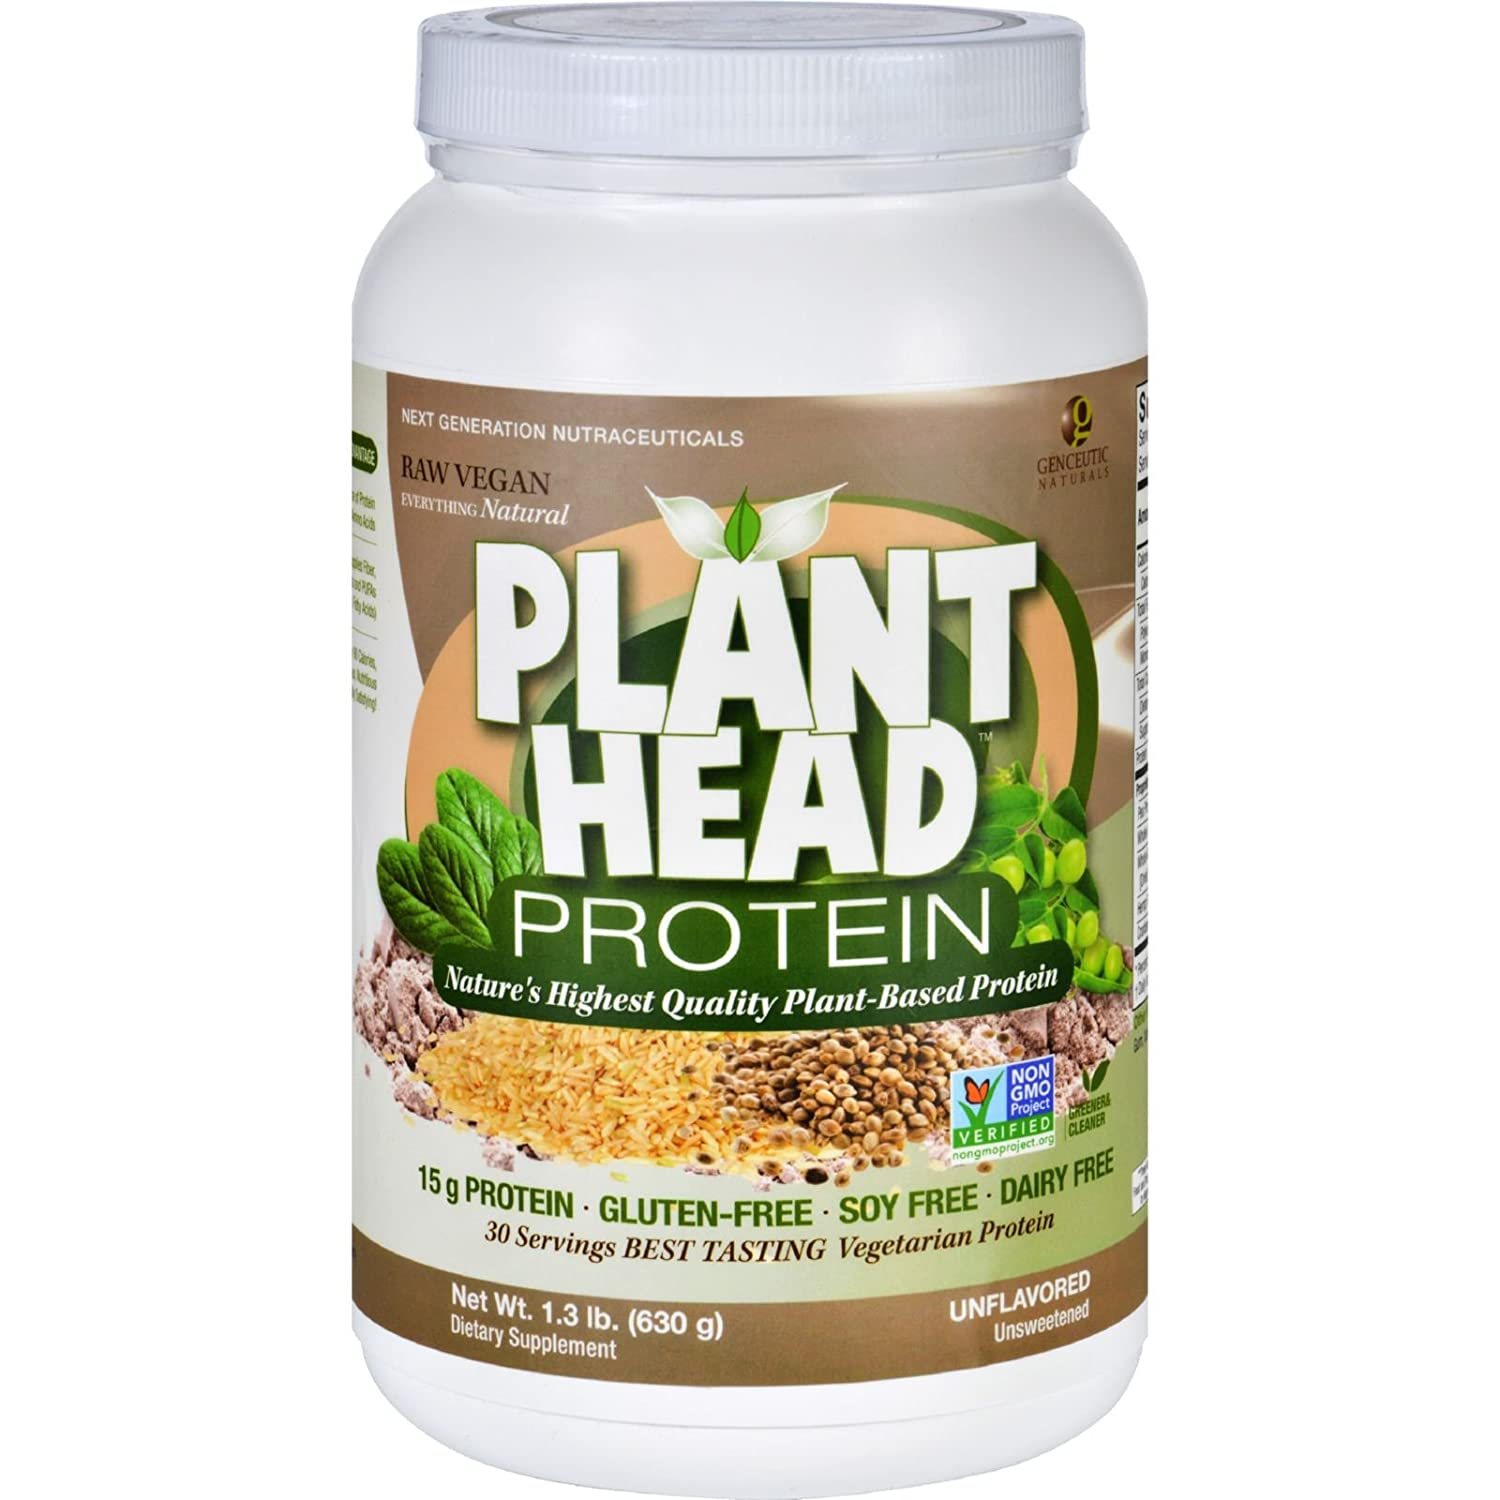 Amazon.com: 2 Pack of Genceutic Naturals Plant Head Protein - Unflavored - 1.3 lb - Gluten Free-Dairy Free -: Health & Personal Care